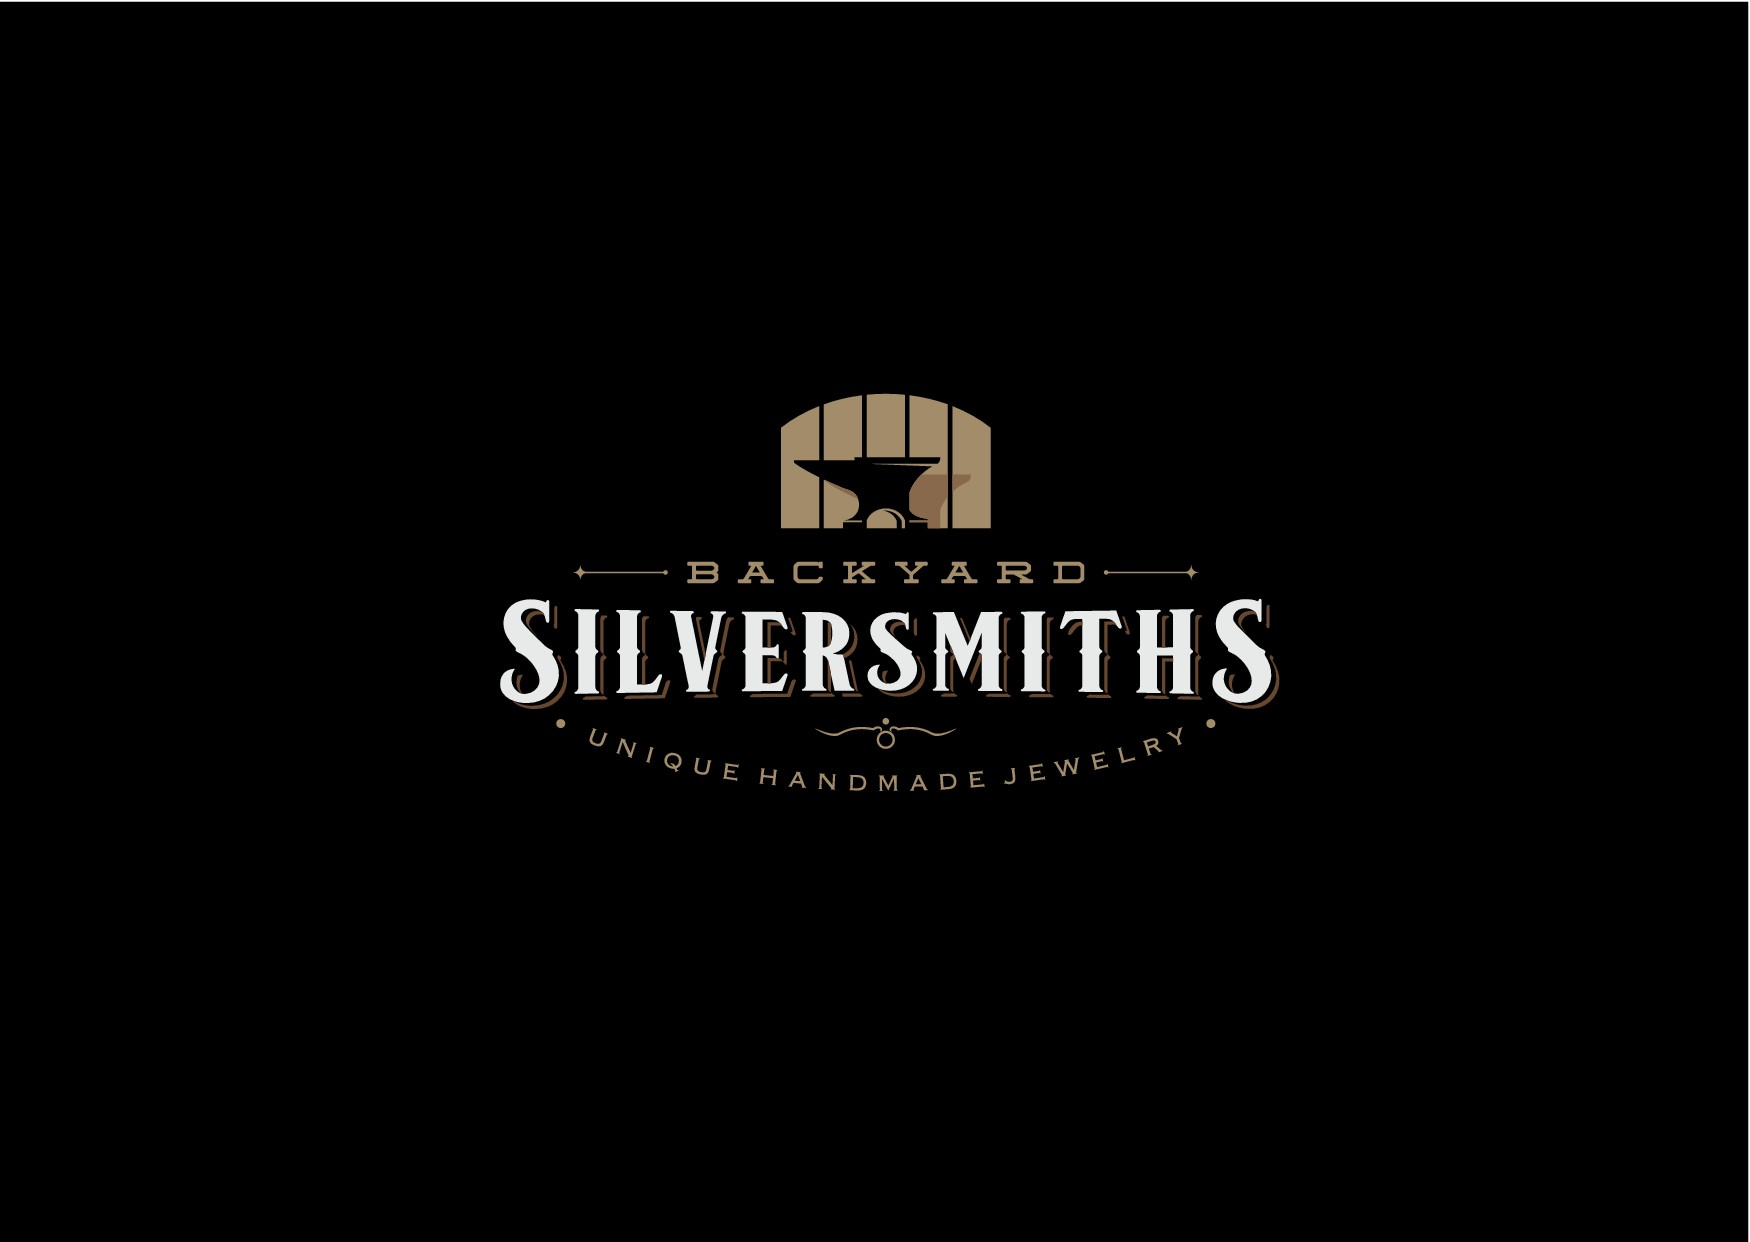 We are Backyard Silversmiths and we need a logo! :)